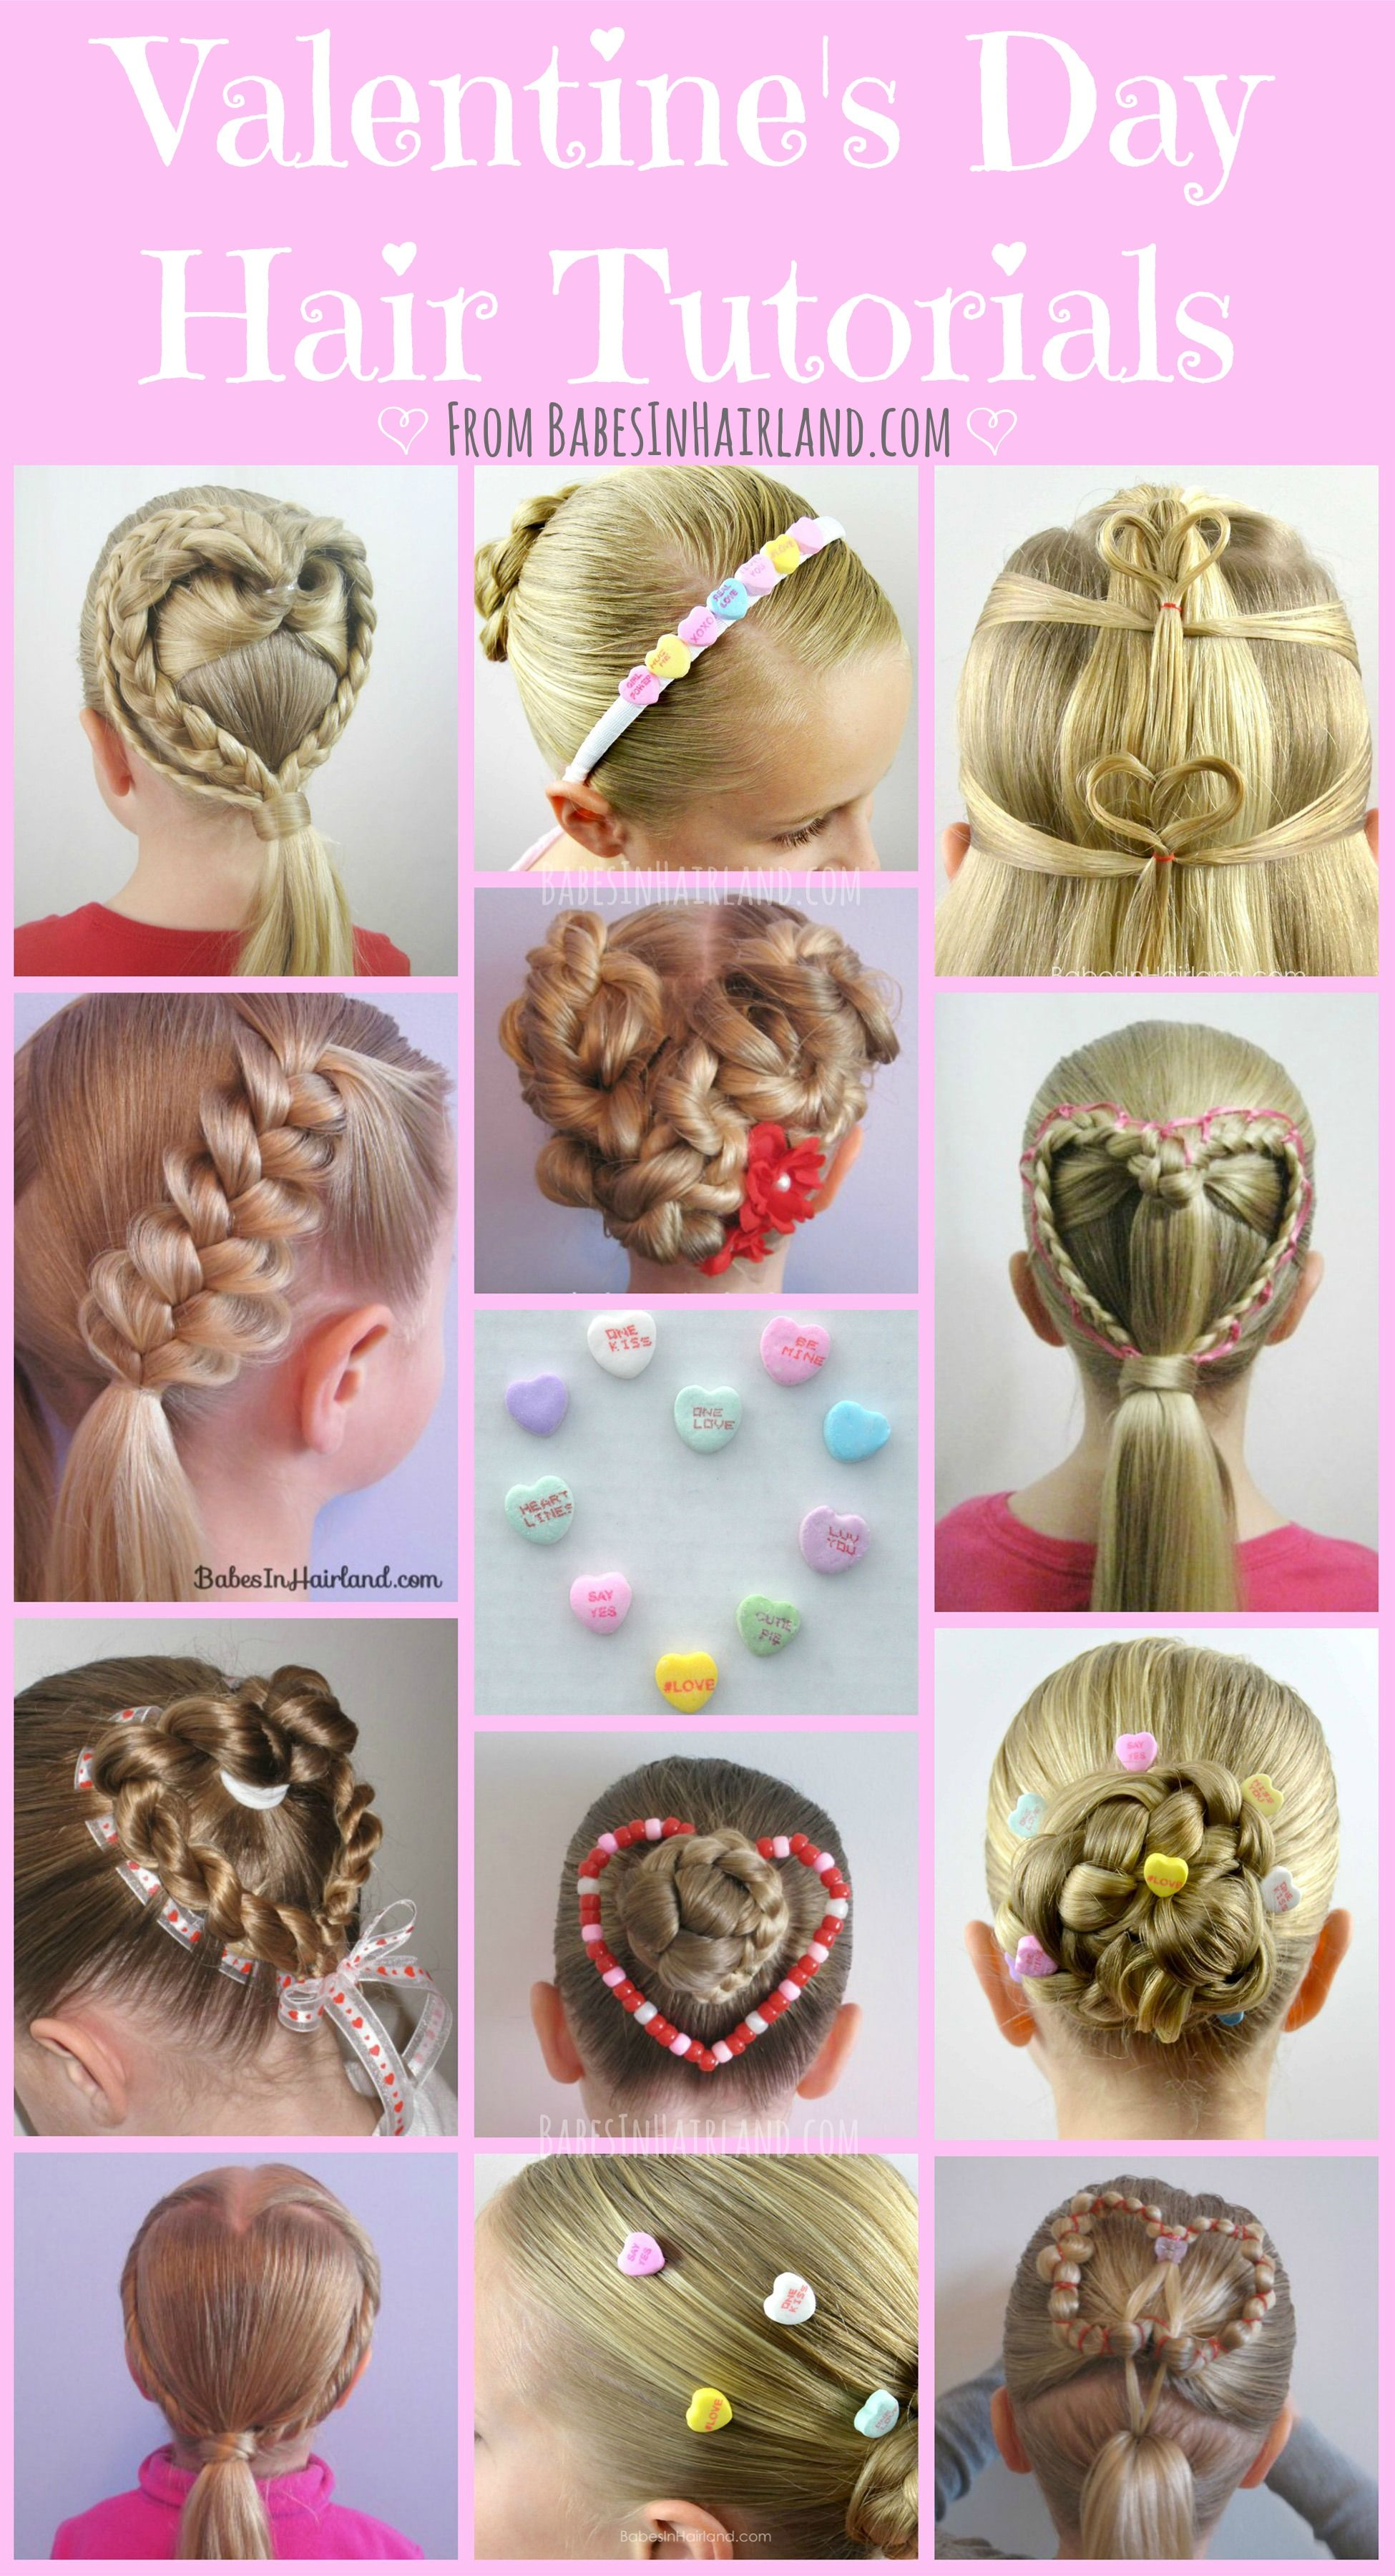 15 Valentine S Day Hair Tutorials From Babesinhairland Com Perfect For Your Little Girl Or Yourself V Valentine S Day Hairstyles Hair Styles Girl Hair Dos